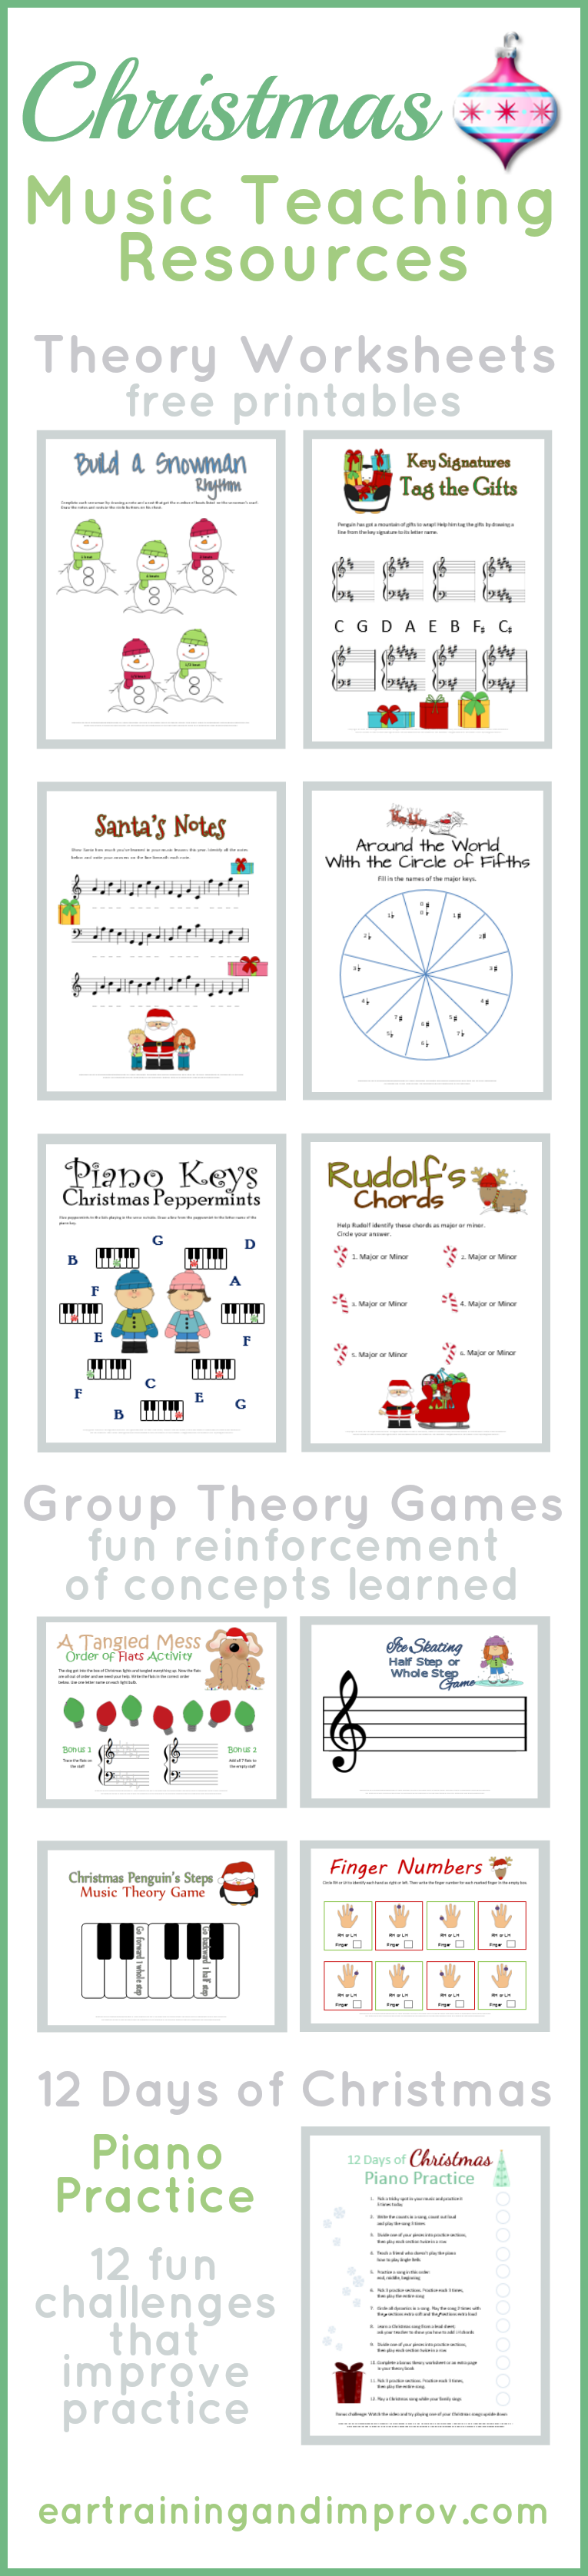 Christmas Music Theory Worksheets 20 Free Printables – Piano Theory Worksheets